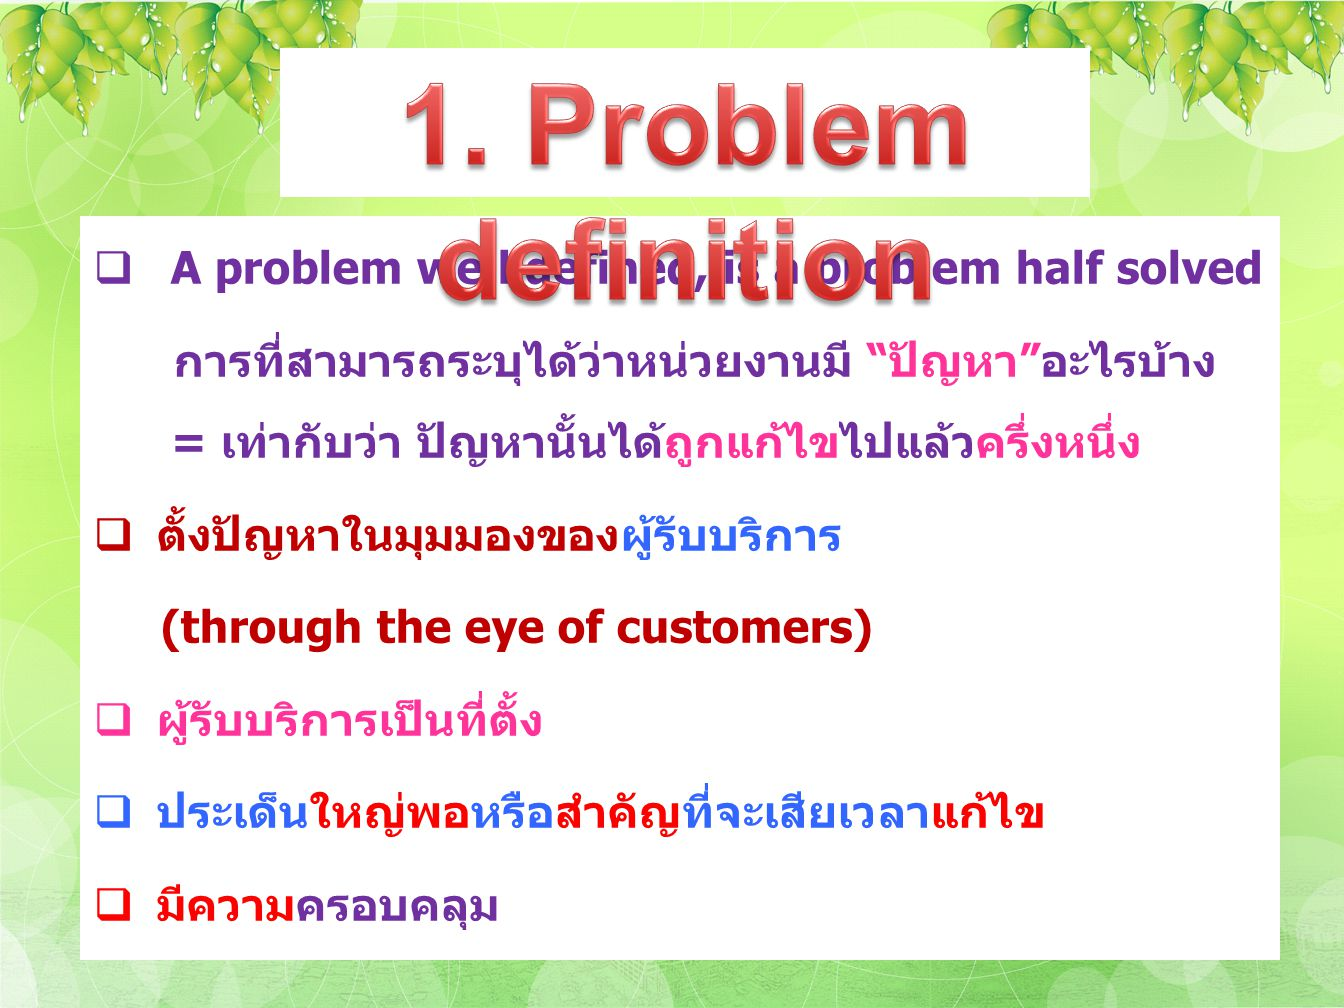 1. Problem definition A problem well defined, is a problem half solved